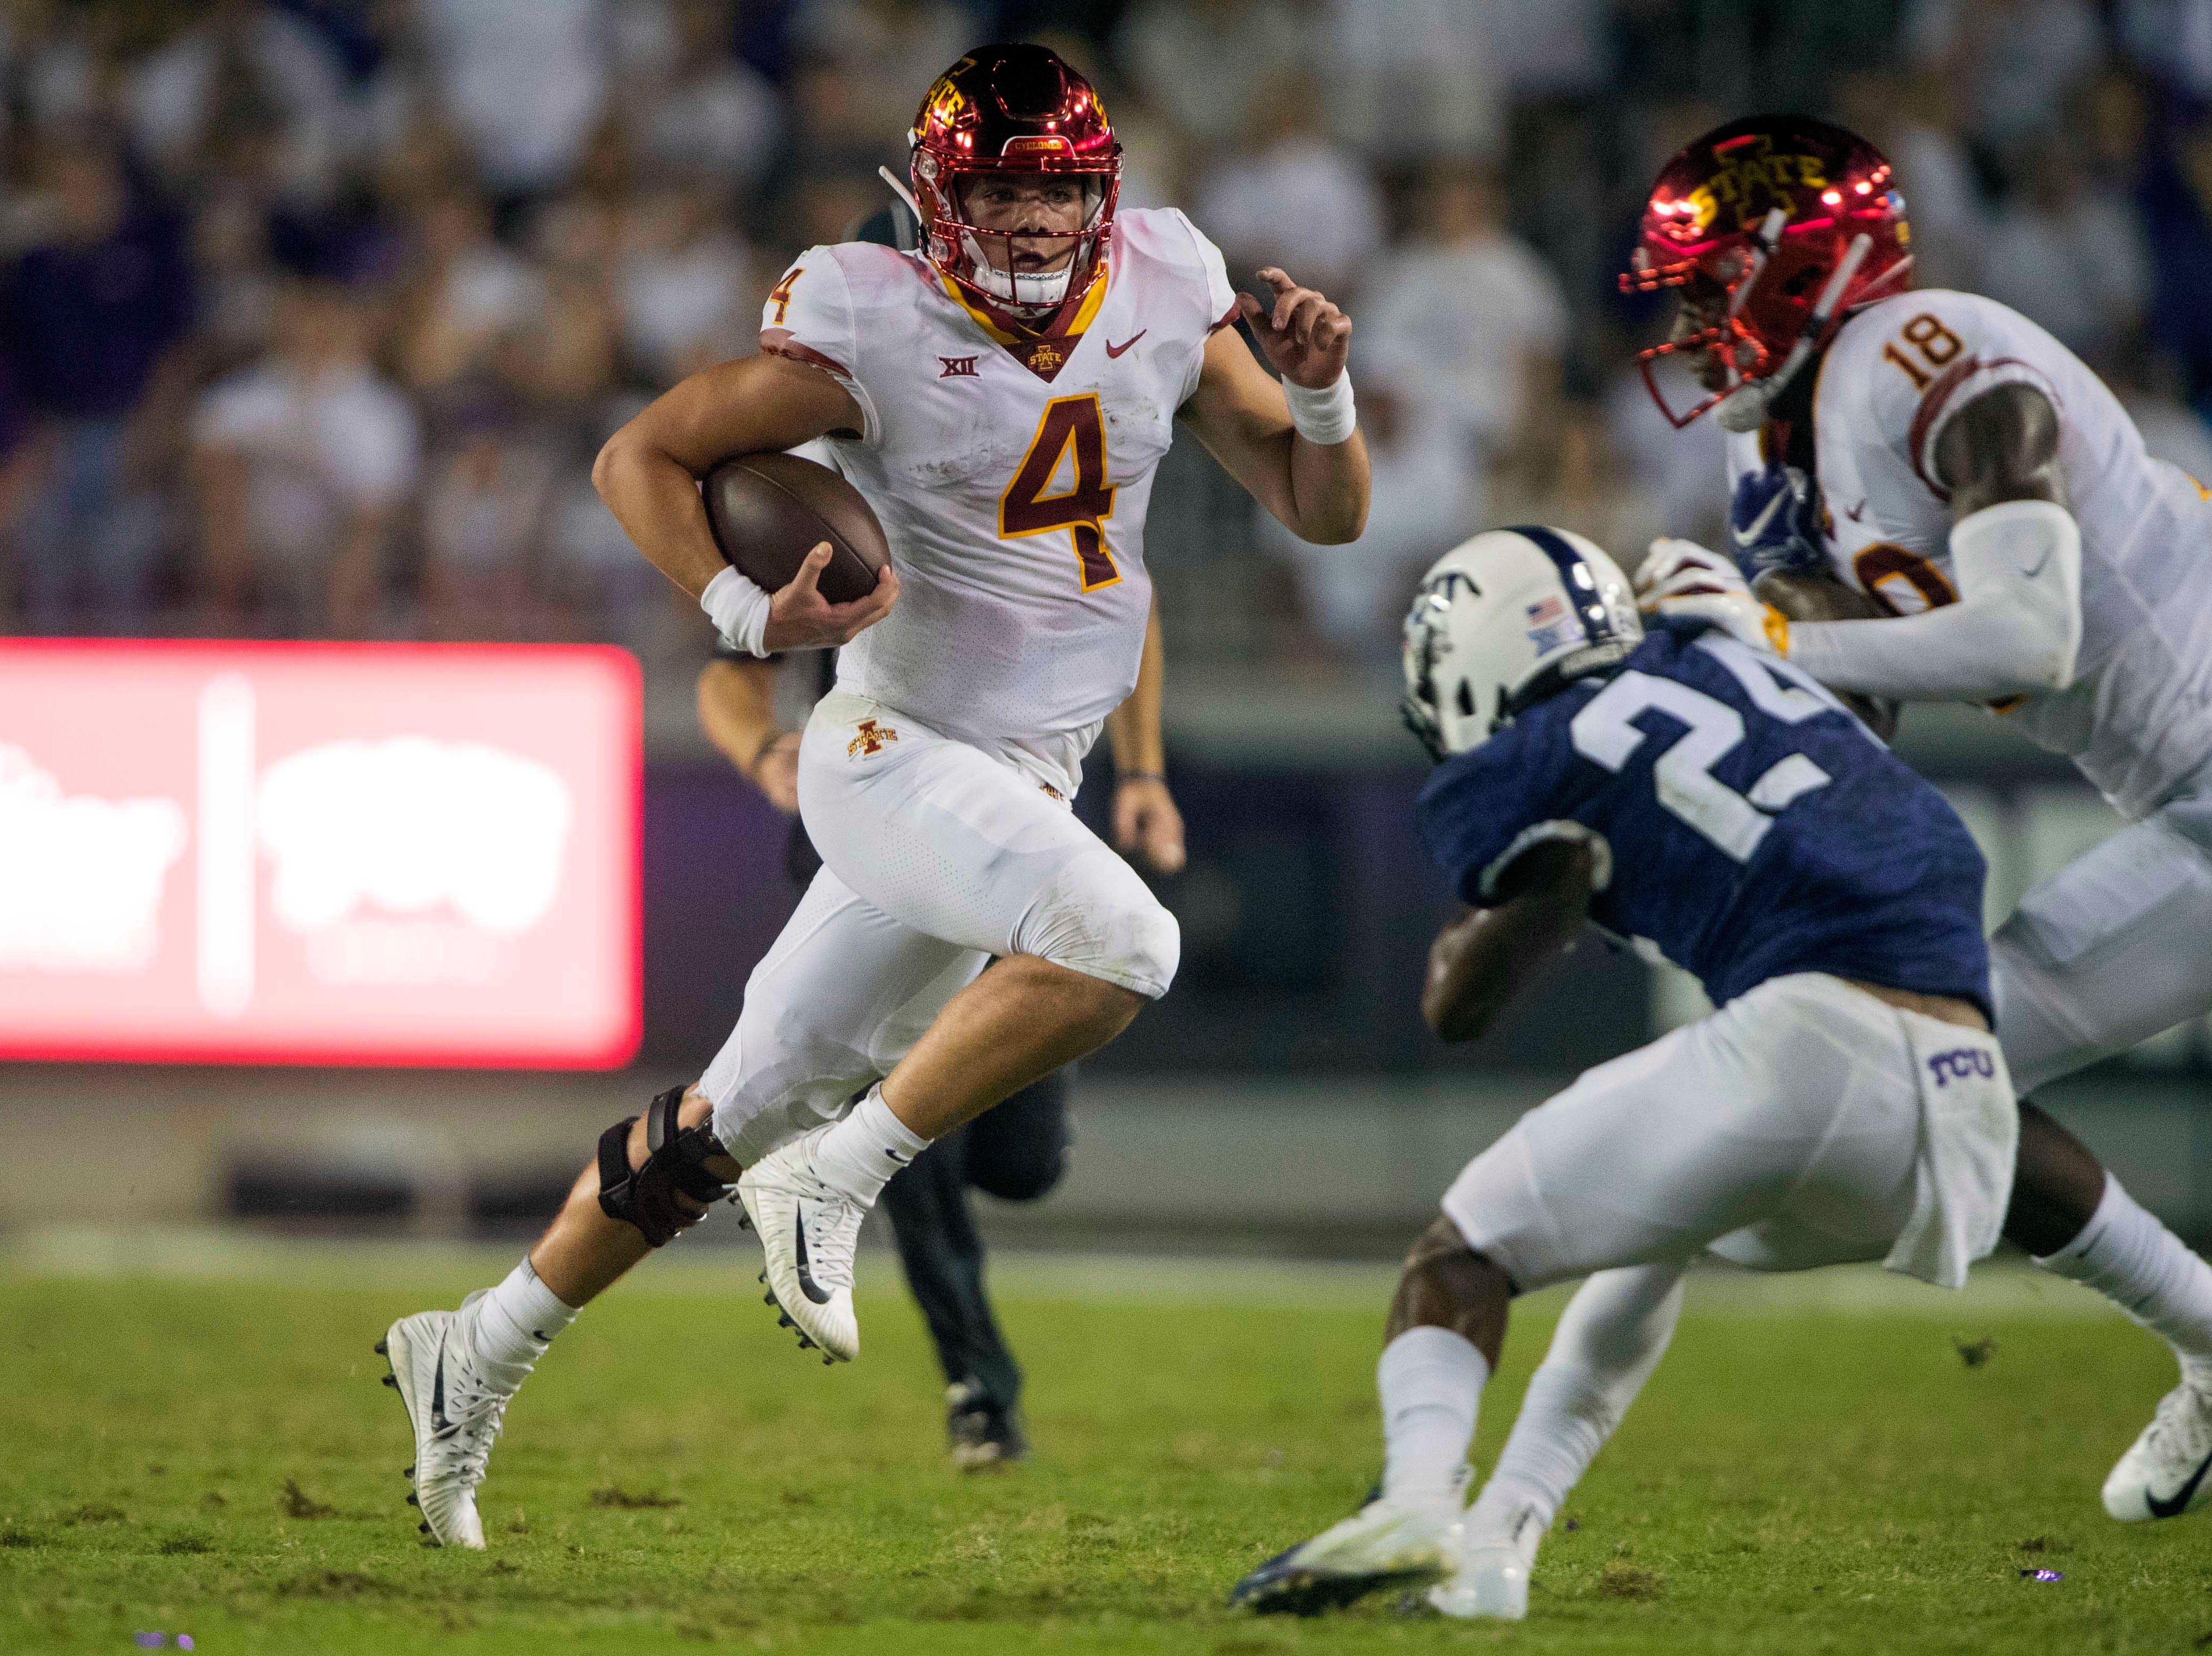 Iowa State Cyclones quarterback Zeb Noland (4) runs for a first down against the TCU Horned Frogs defense during the second half at Amon G. Carter Stadium.